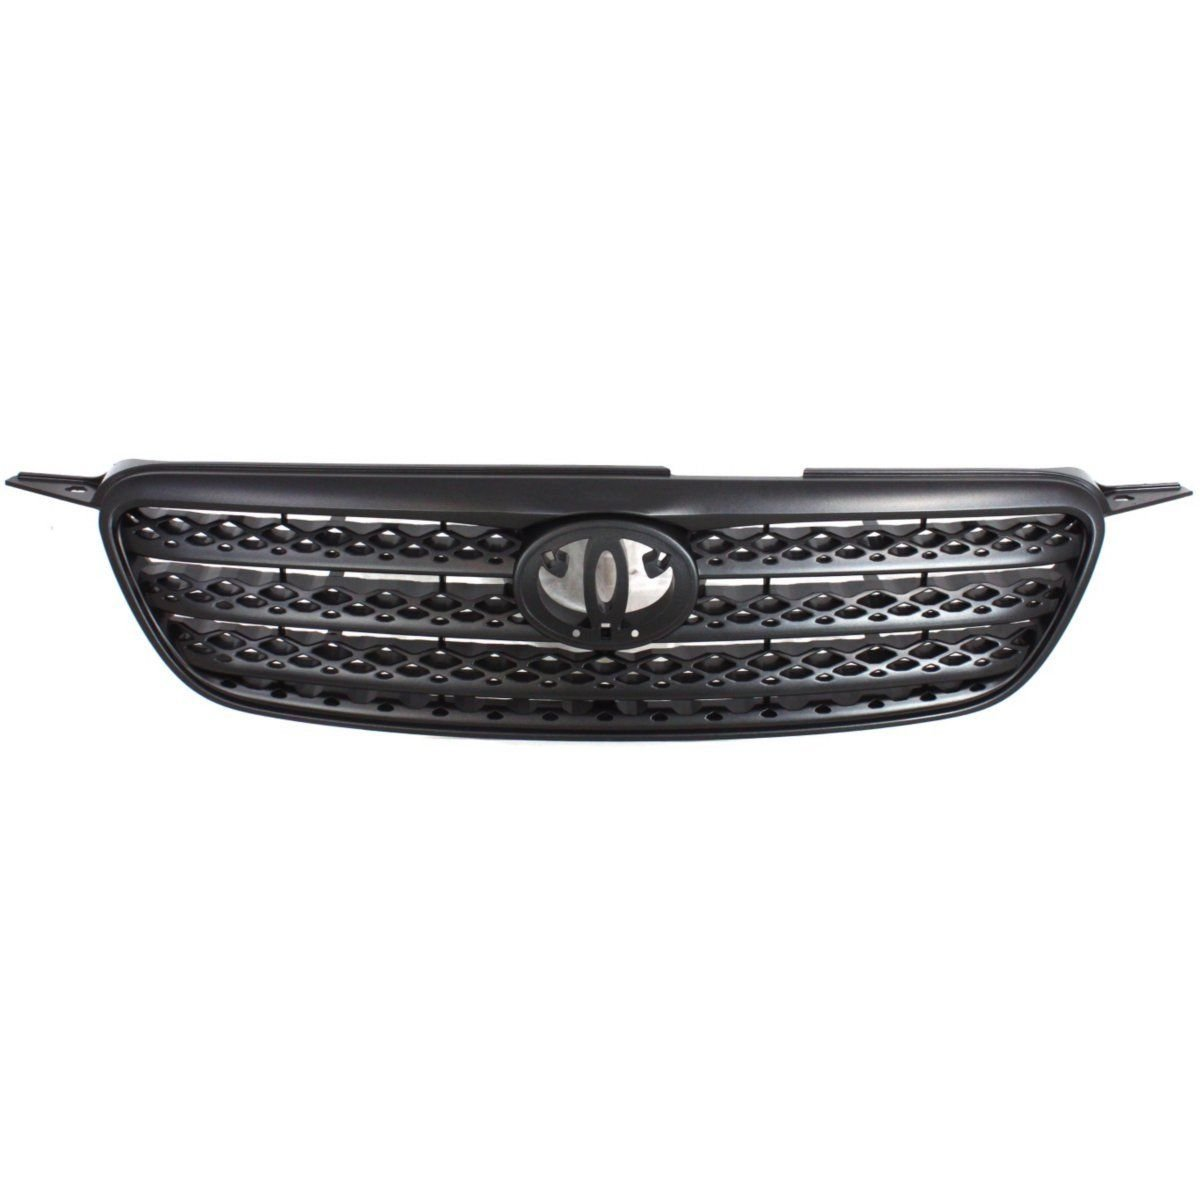 New Front Grille For 2005-2006 Toyota Corolla TO1200280 5310002100B0